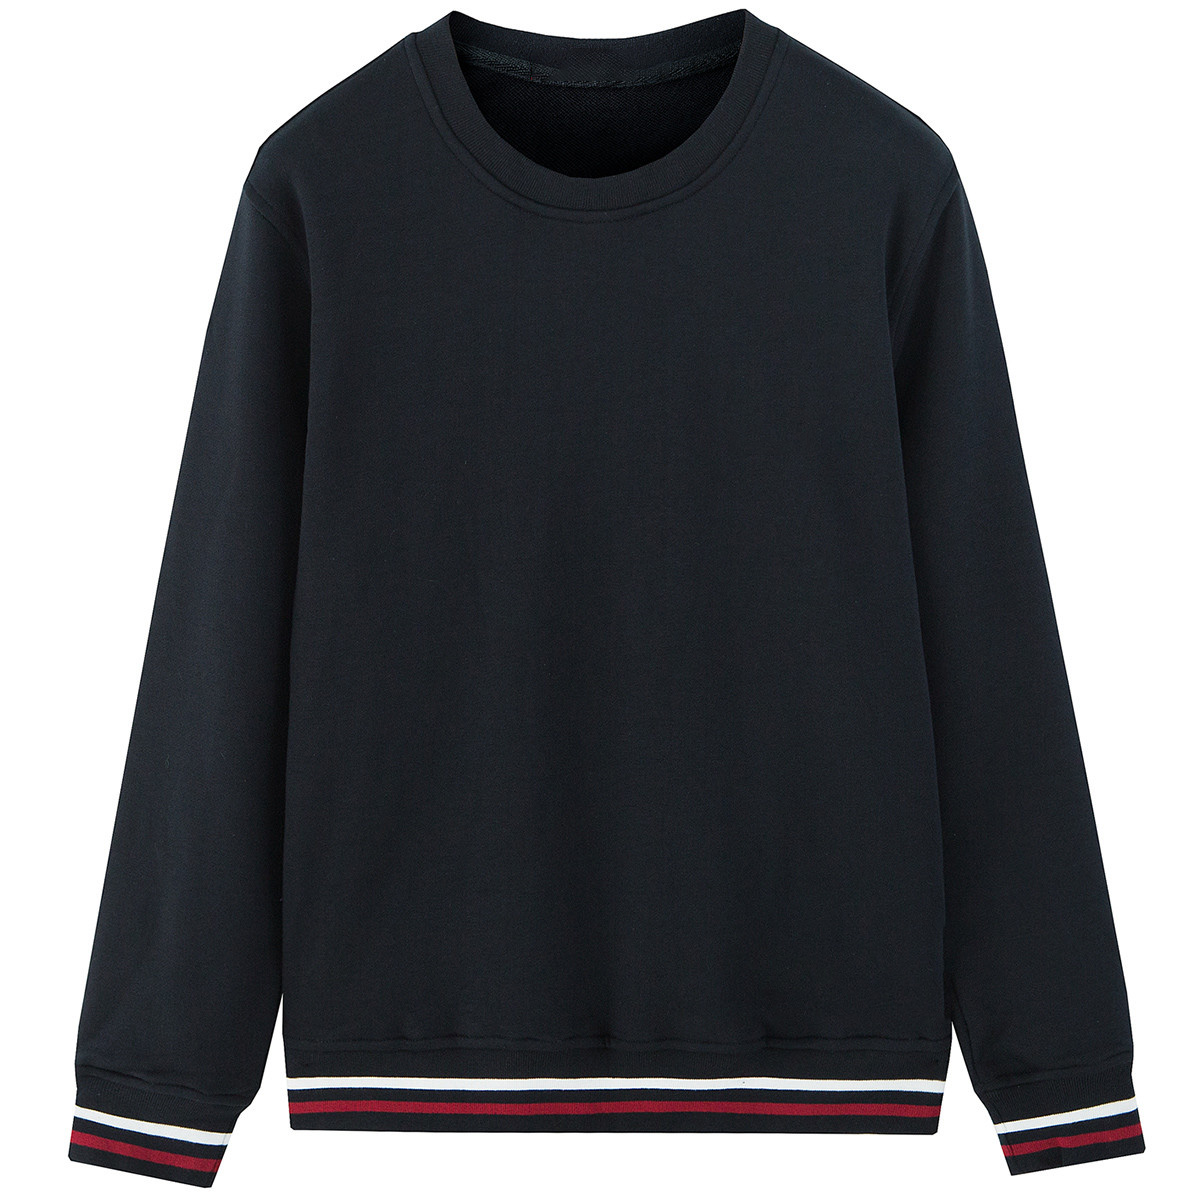 New casual Round Collared Loose Cotton Color Matching Long Sleeve Men's Sweater